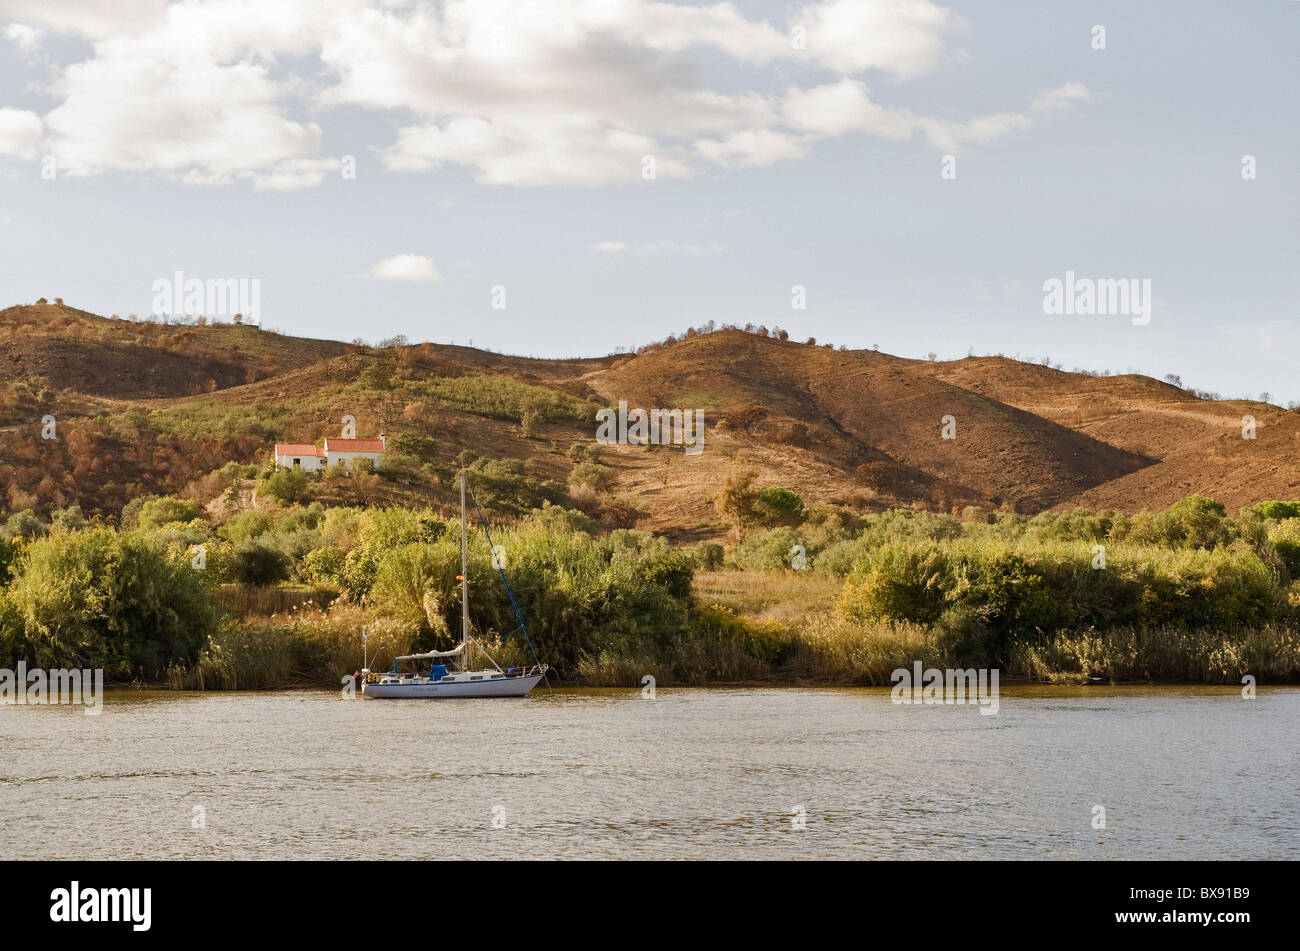 Yacht anchored on the river Guadiana near Alcoutim. The river forms a natural boarder between Spain and Portugal - Stock Image